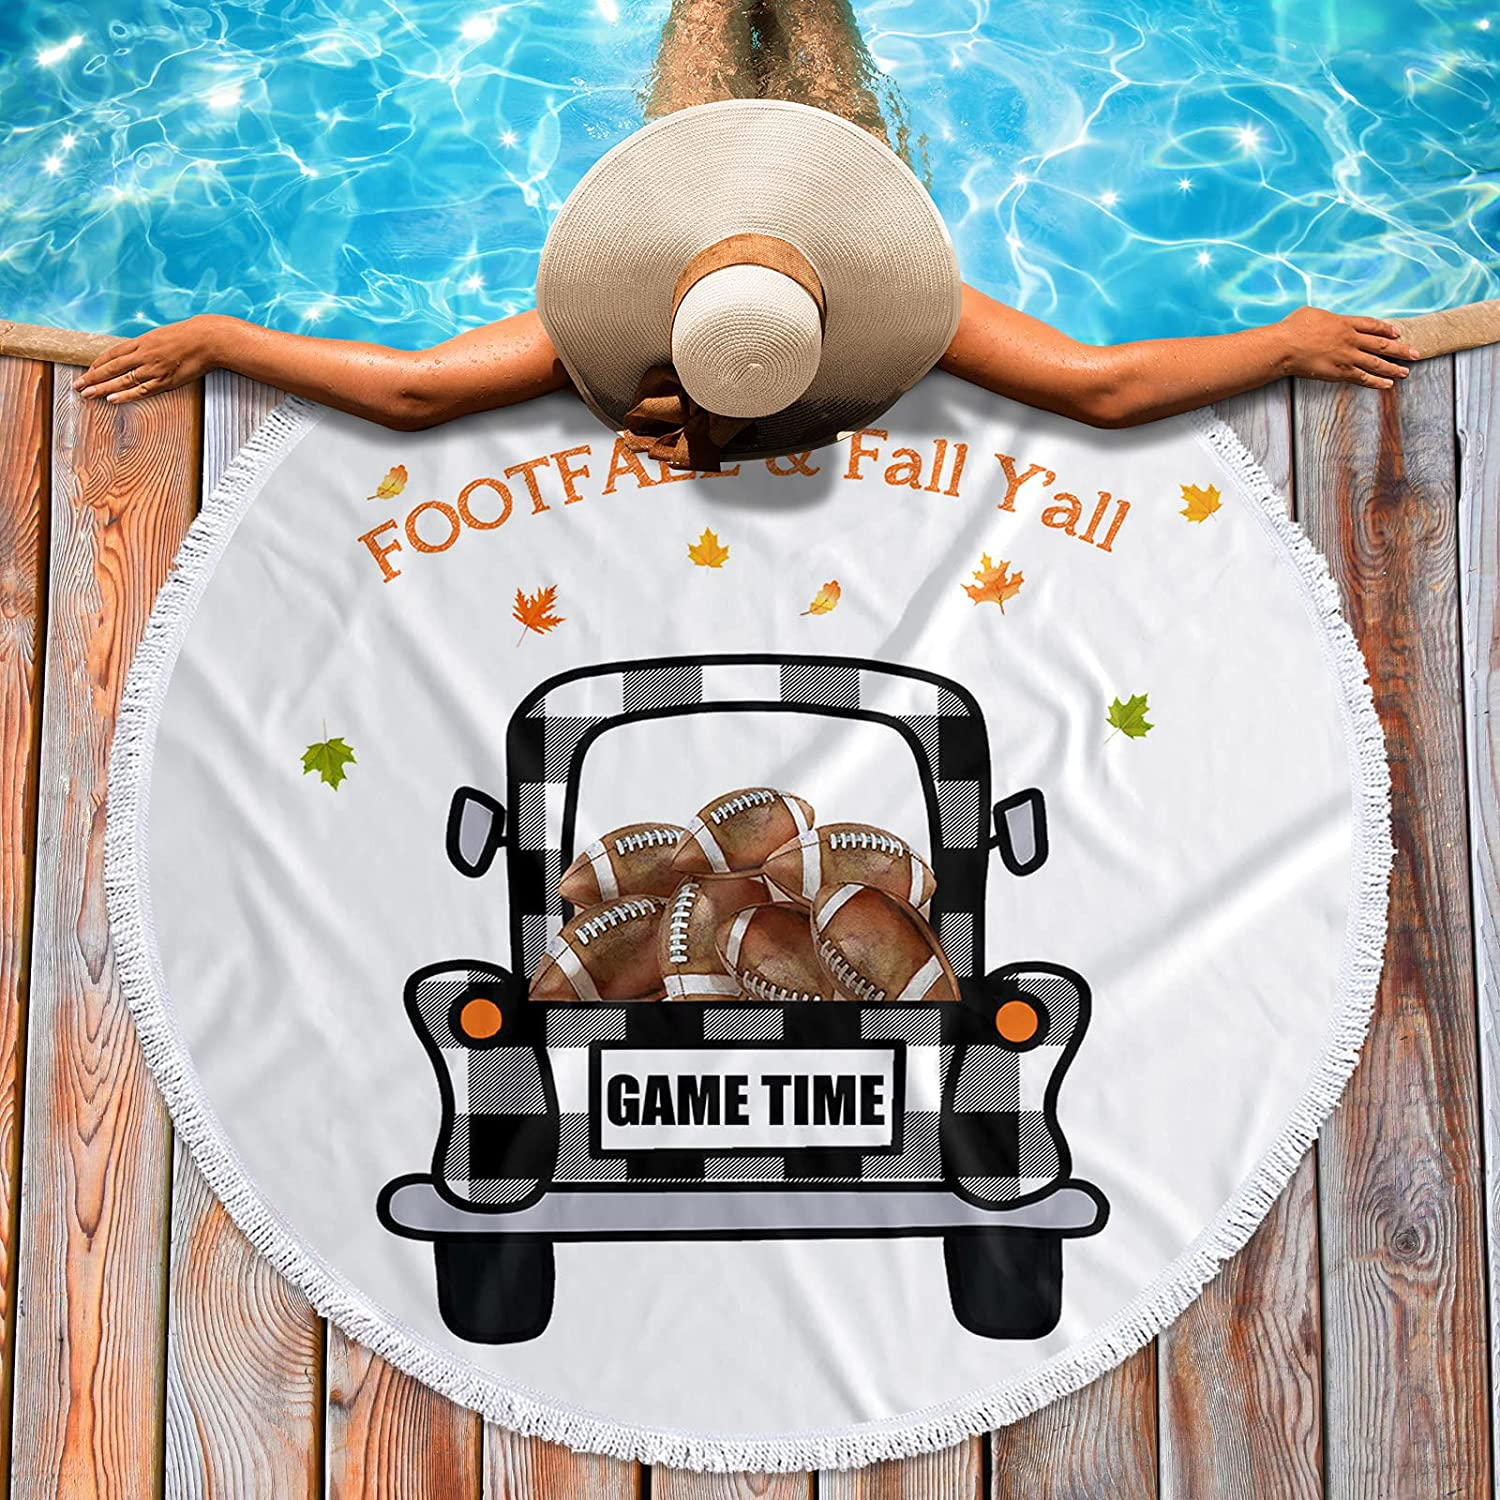 Krisyeol Soft Round Beauty products Beach Towel Plaid Truck Blanket Footba Same day shipping Carry